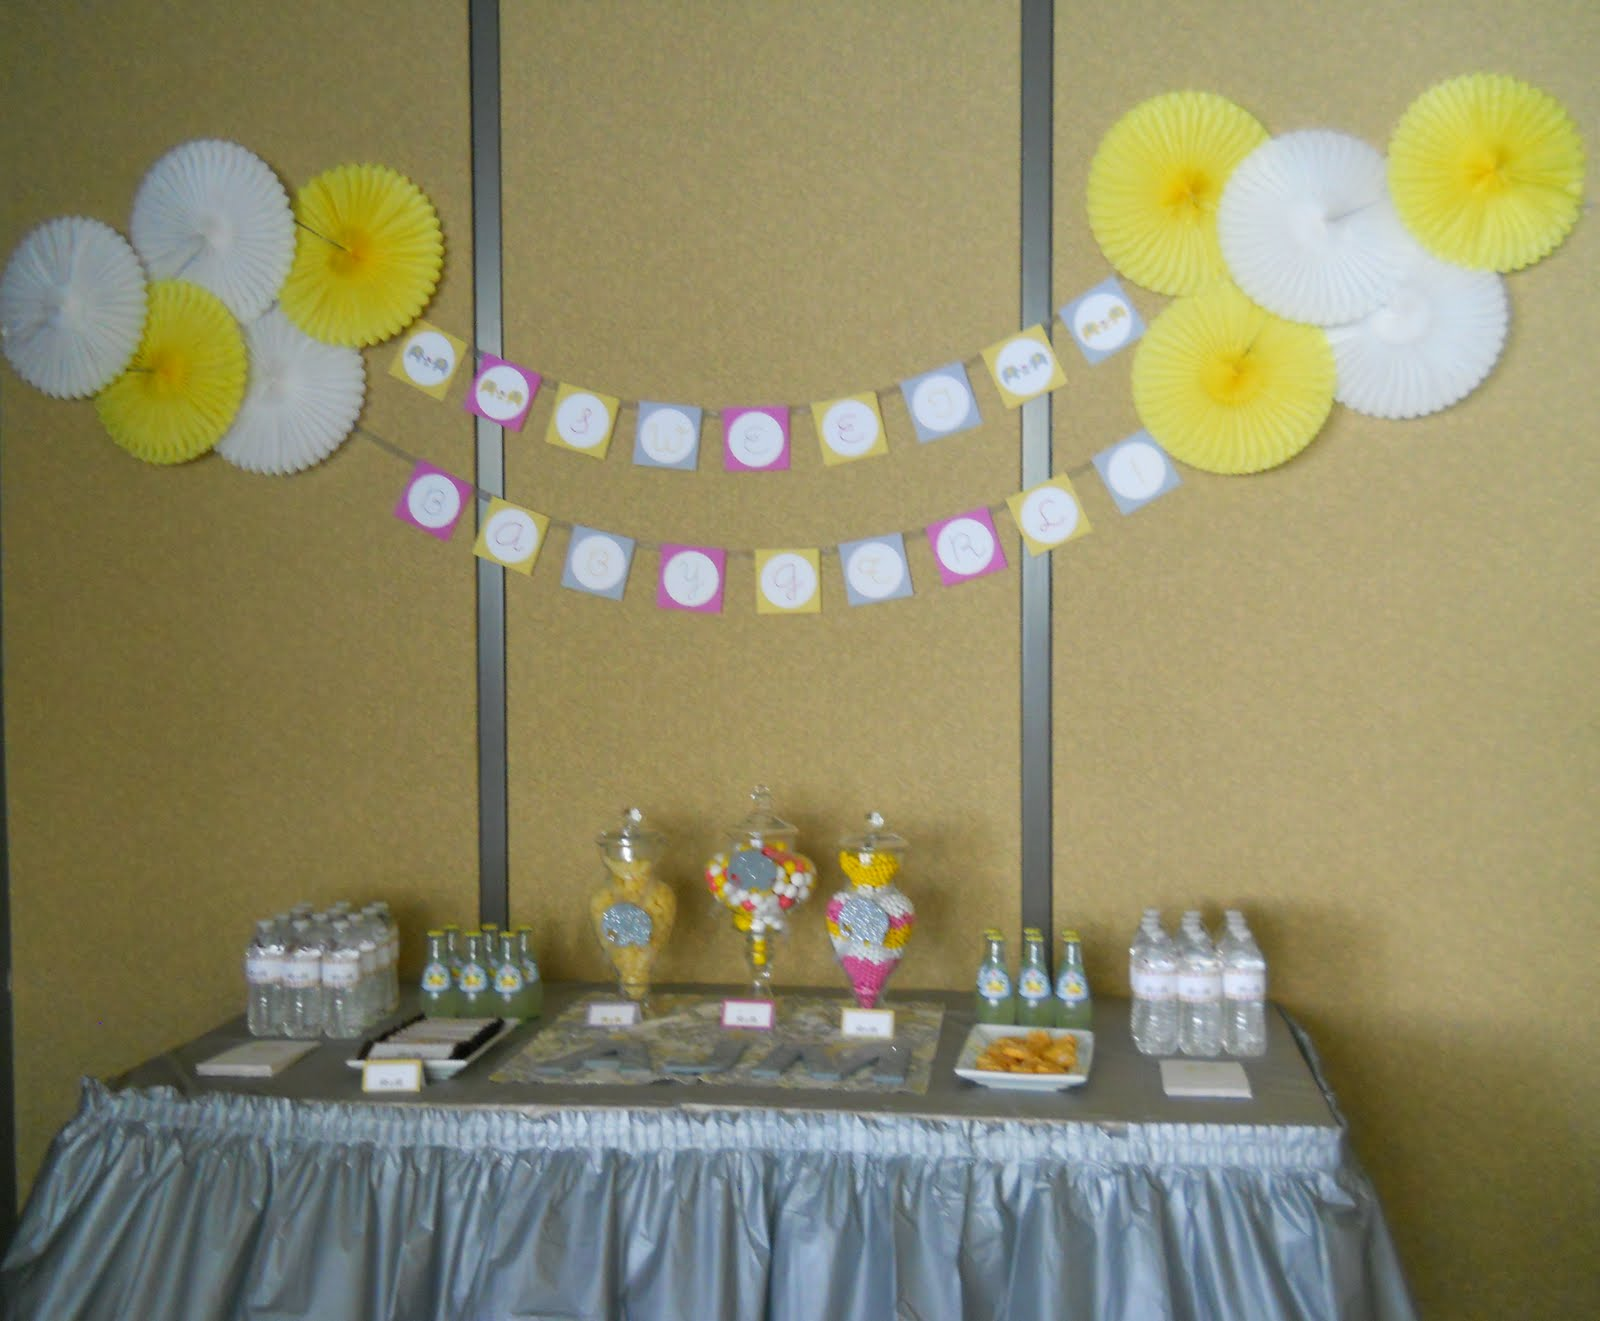 Baby shower decoration ideas interior home design for Baby shower decoration ideas images